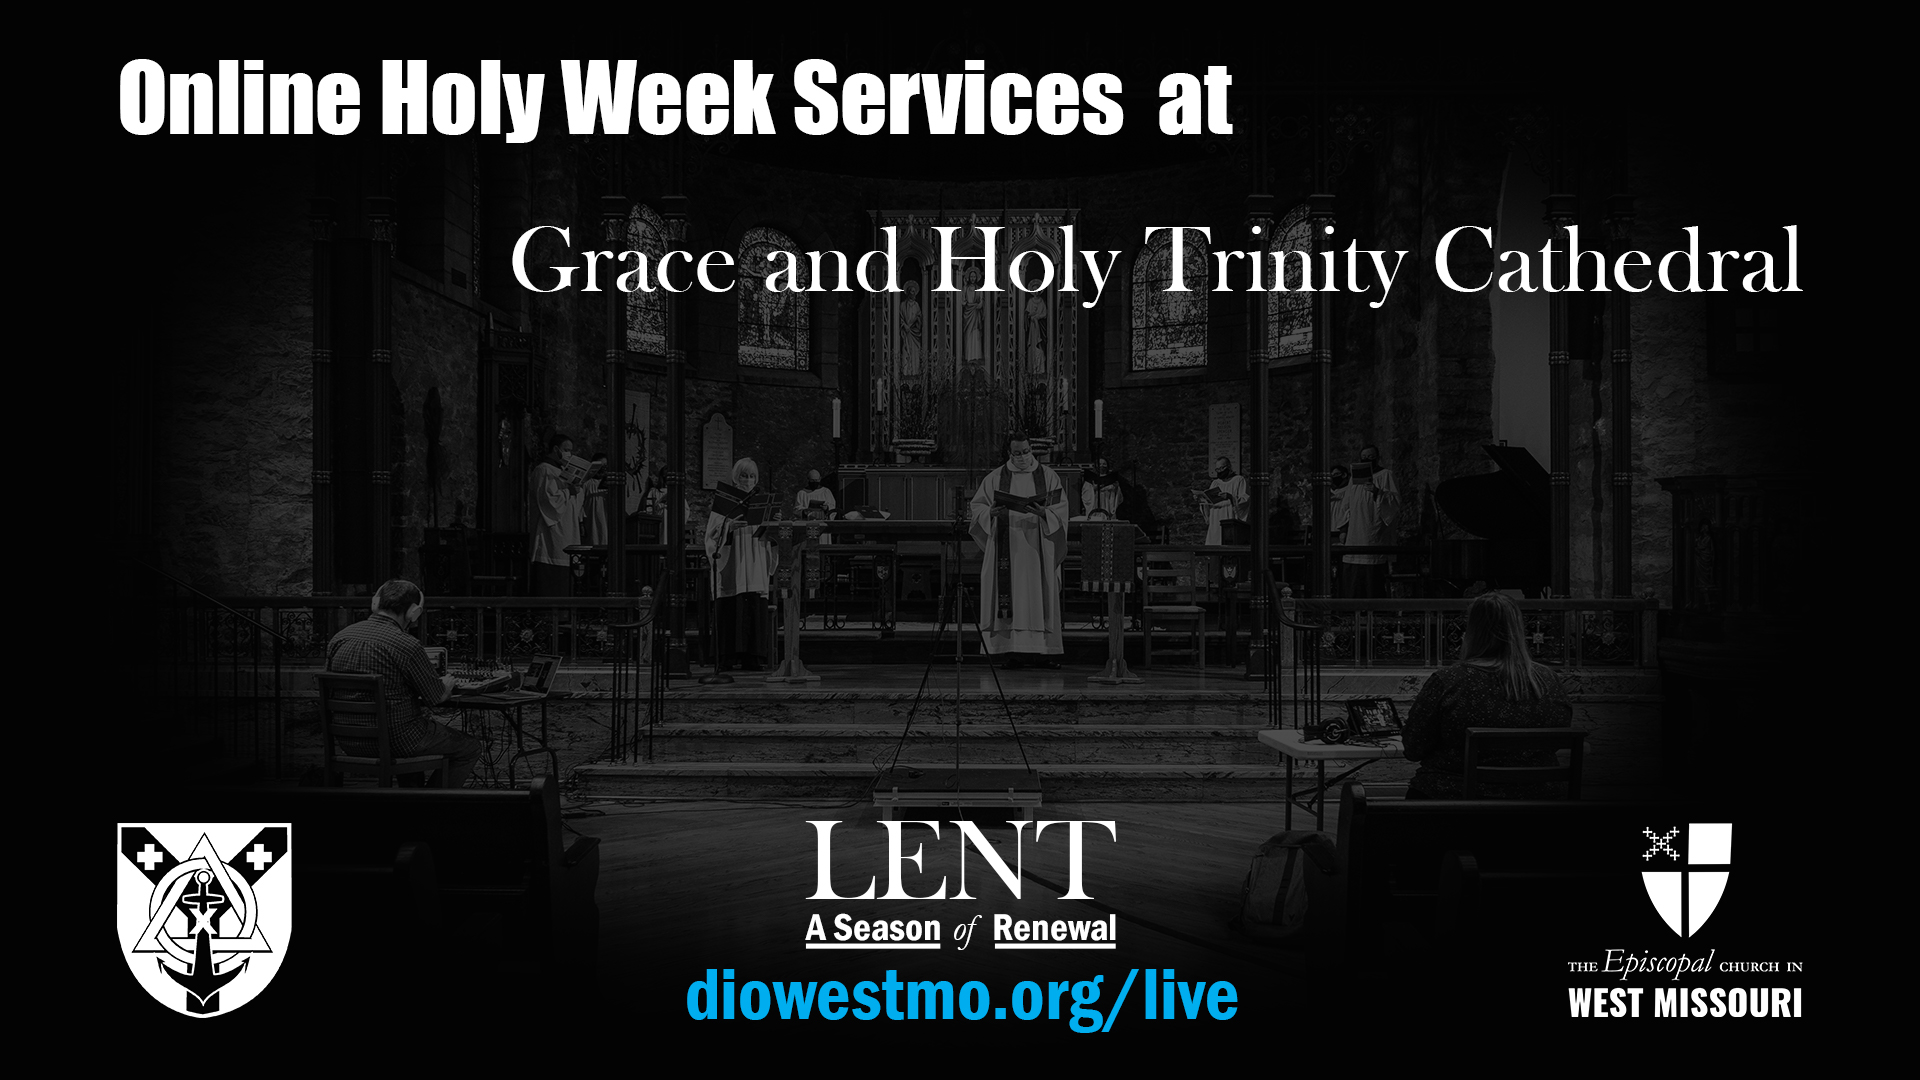 Holy Week at Grace and Holy Trinity Cathedral